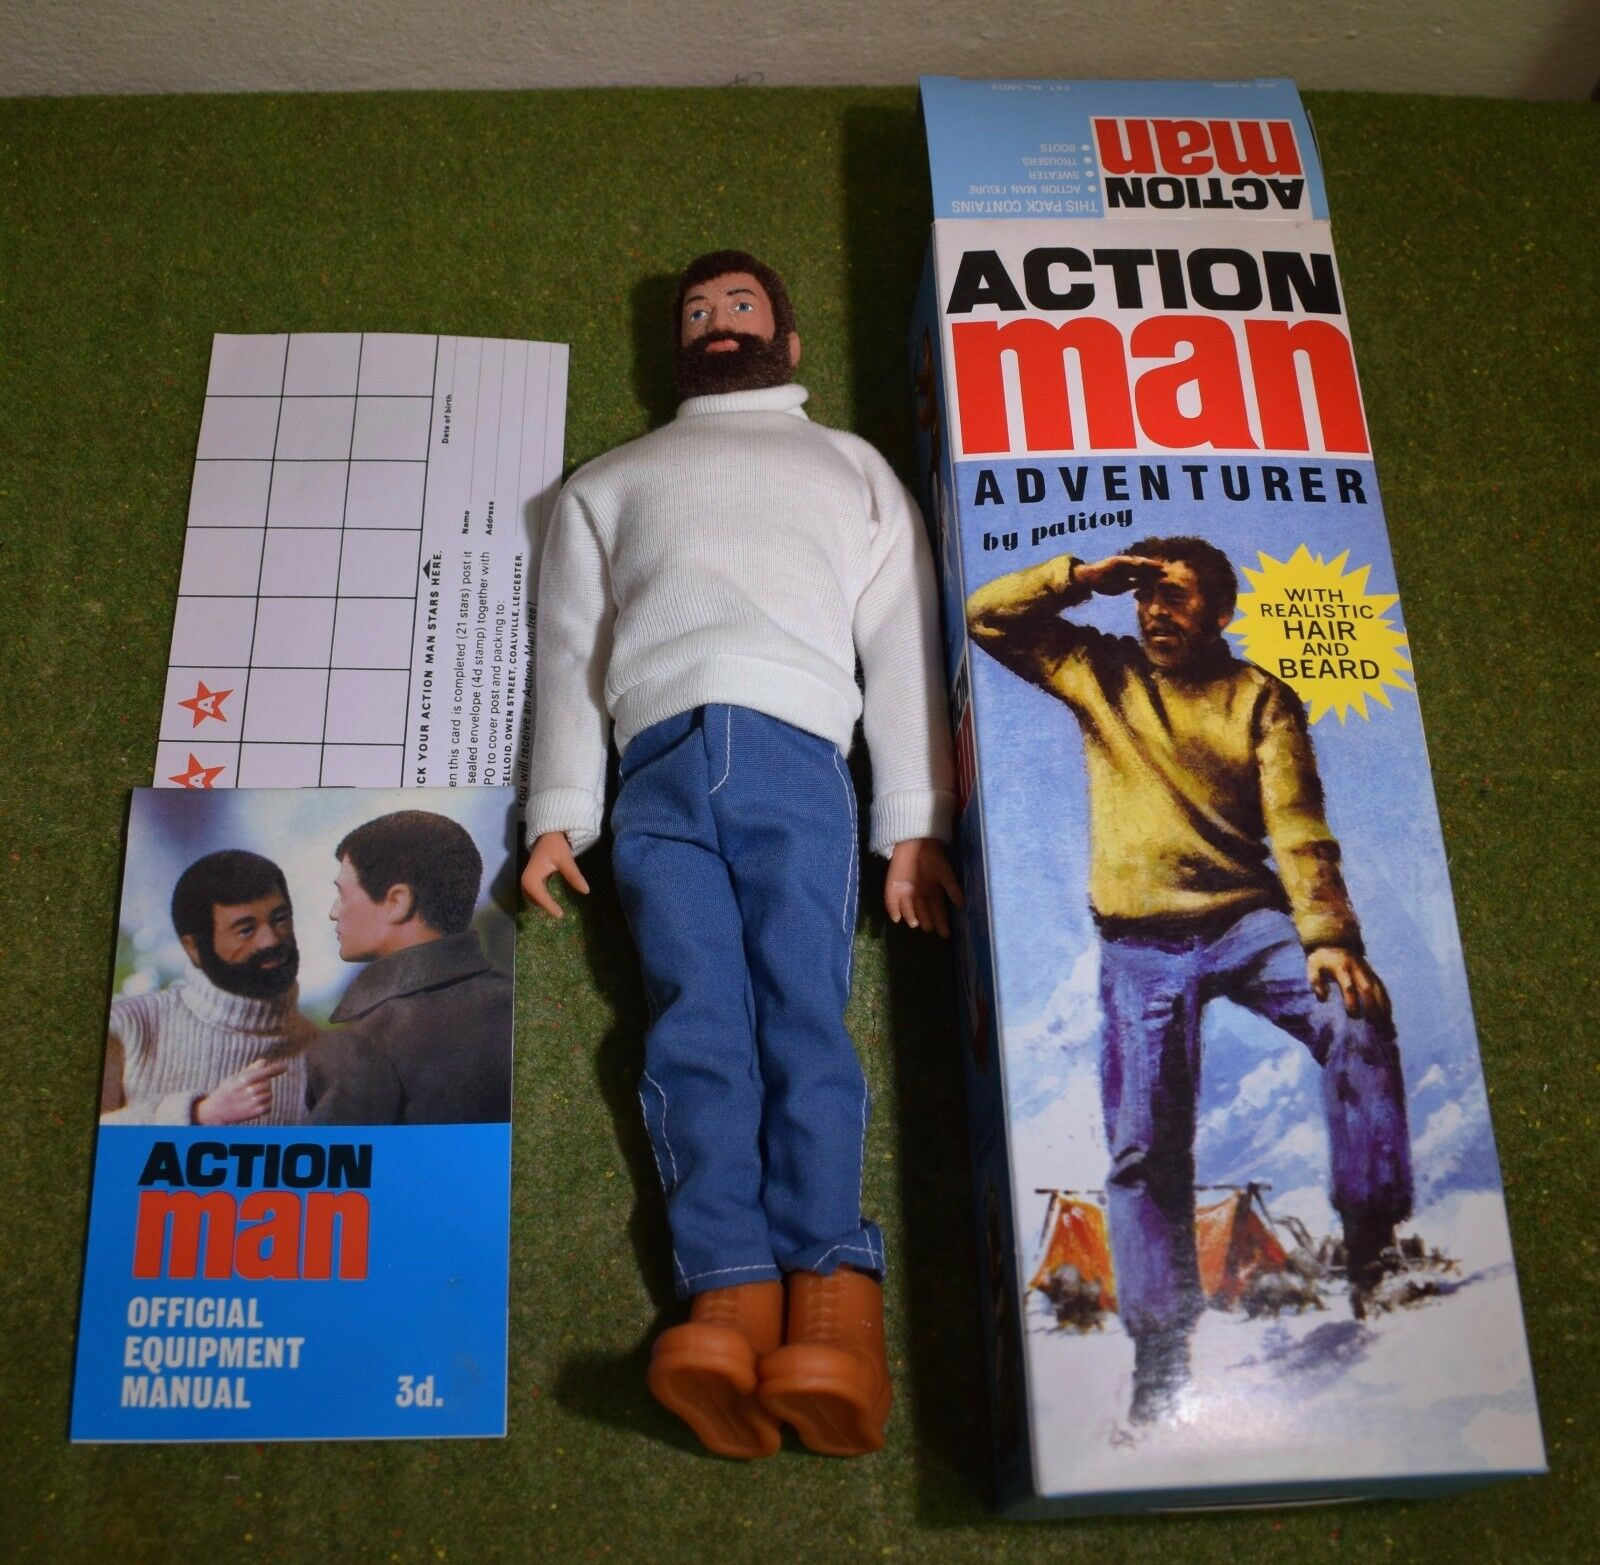 ACTION MAN 40th BOXED ADVENTURER BROWN BEARDED w  HARD HANDS 1 6 SCALE